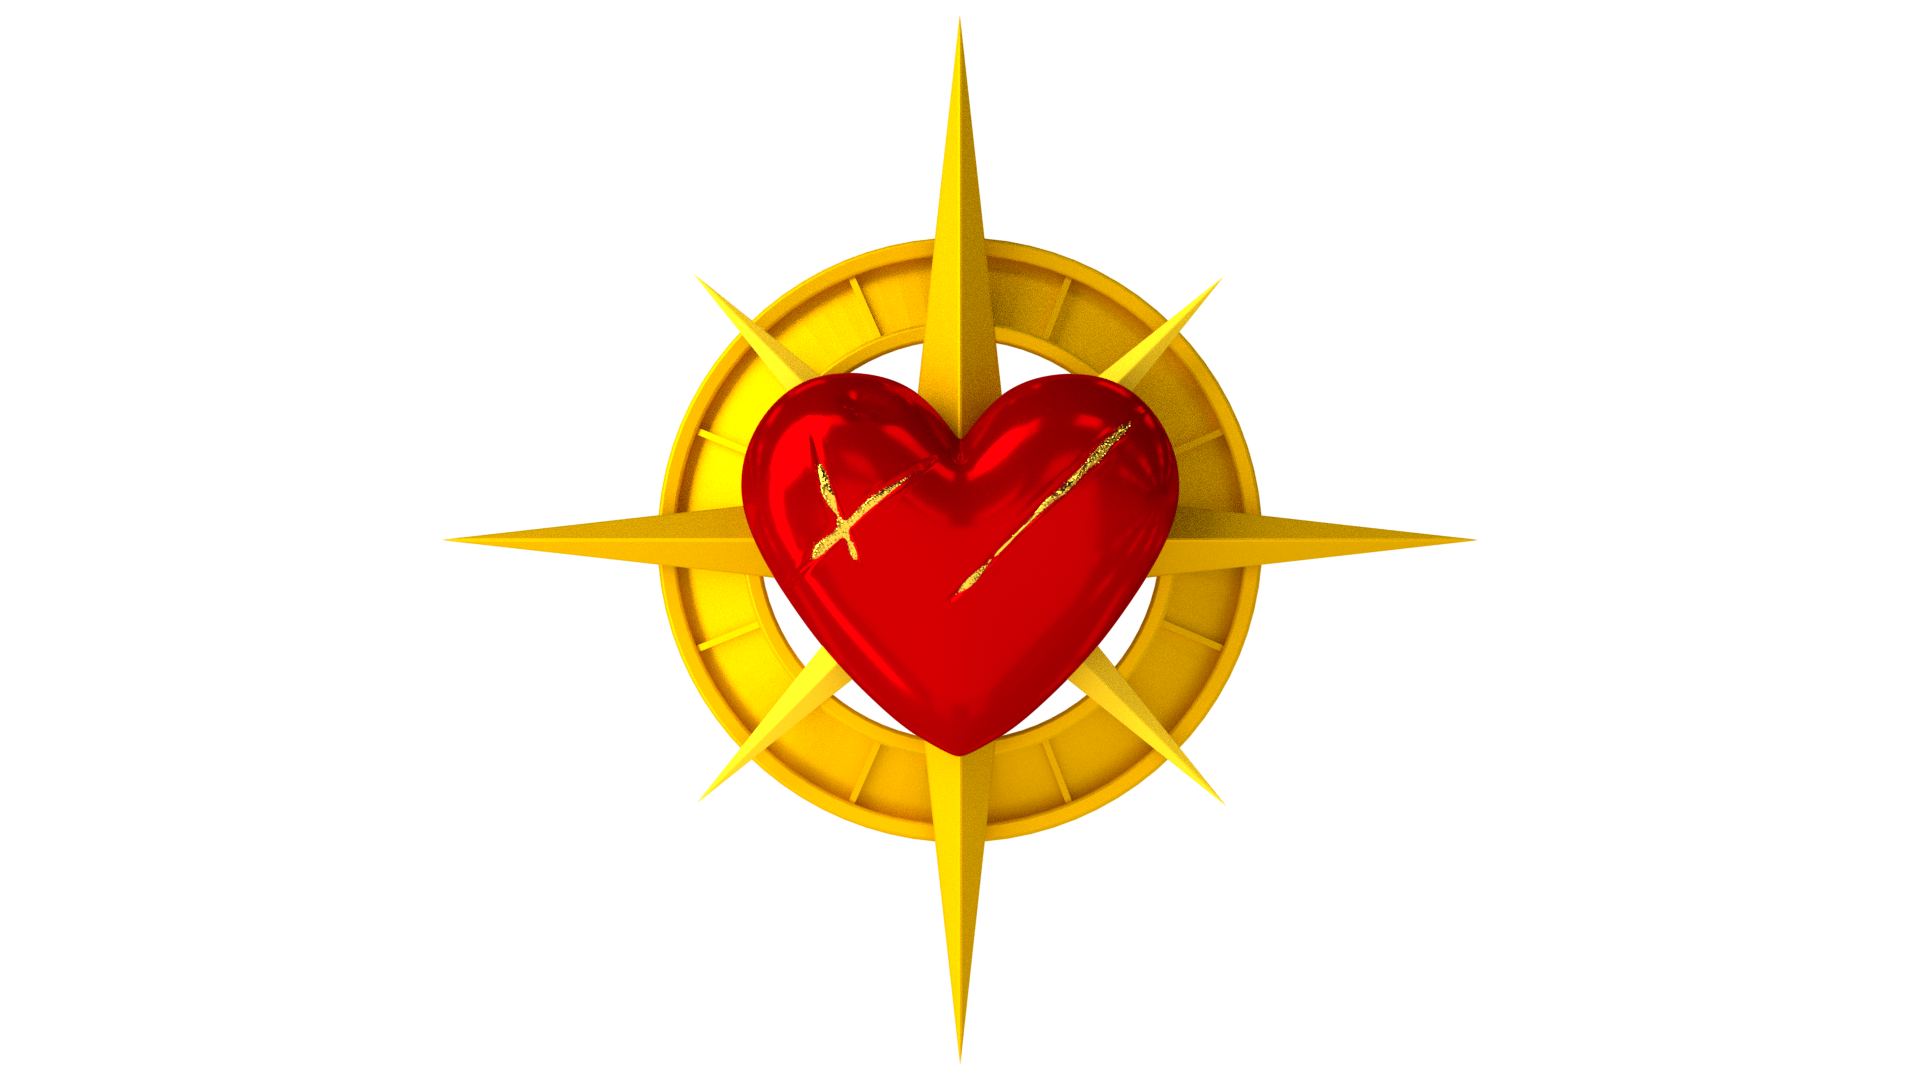 Heart of Gold Ministries